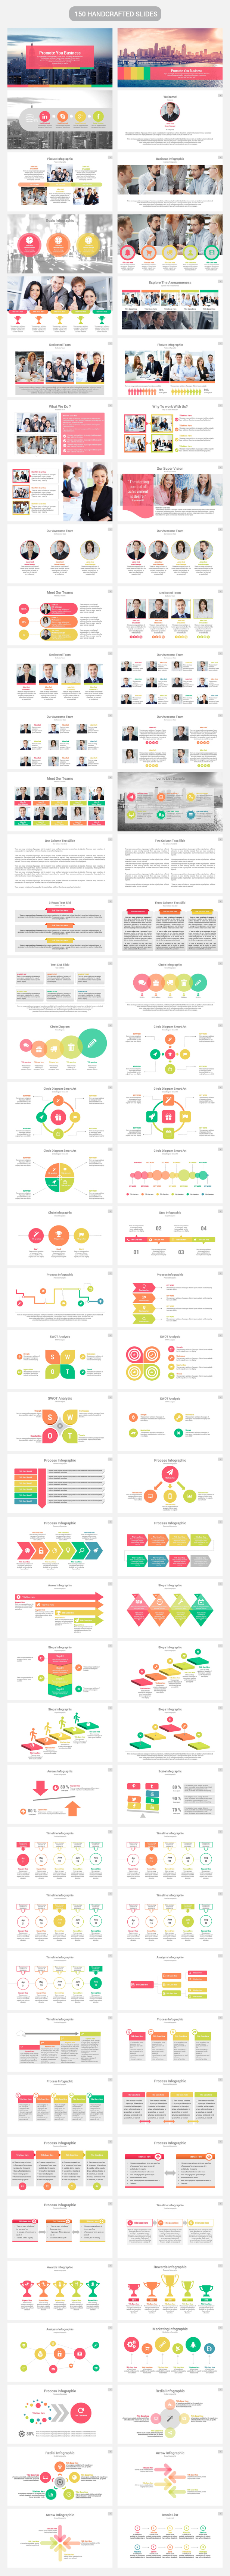 BizMax PowerPoint Presentation Template - 1